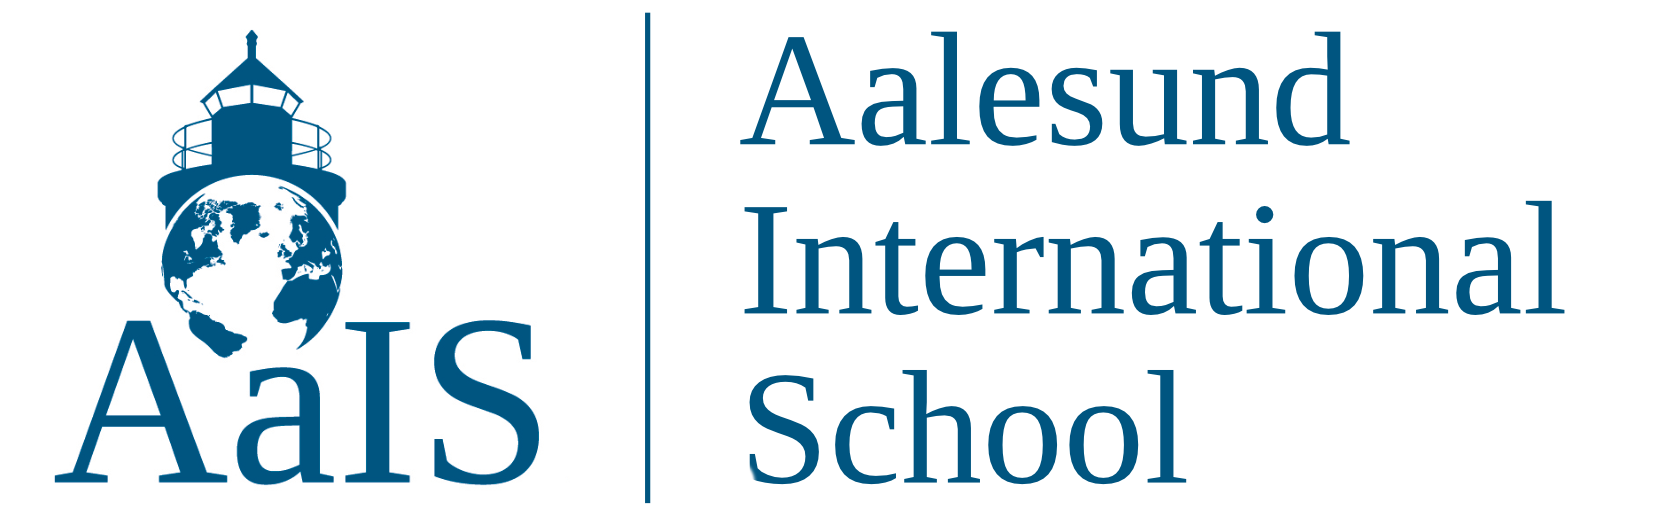 Aalesund International School